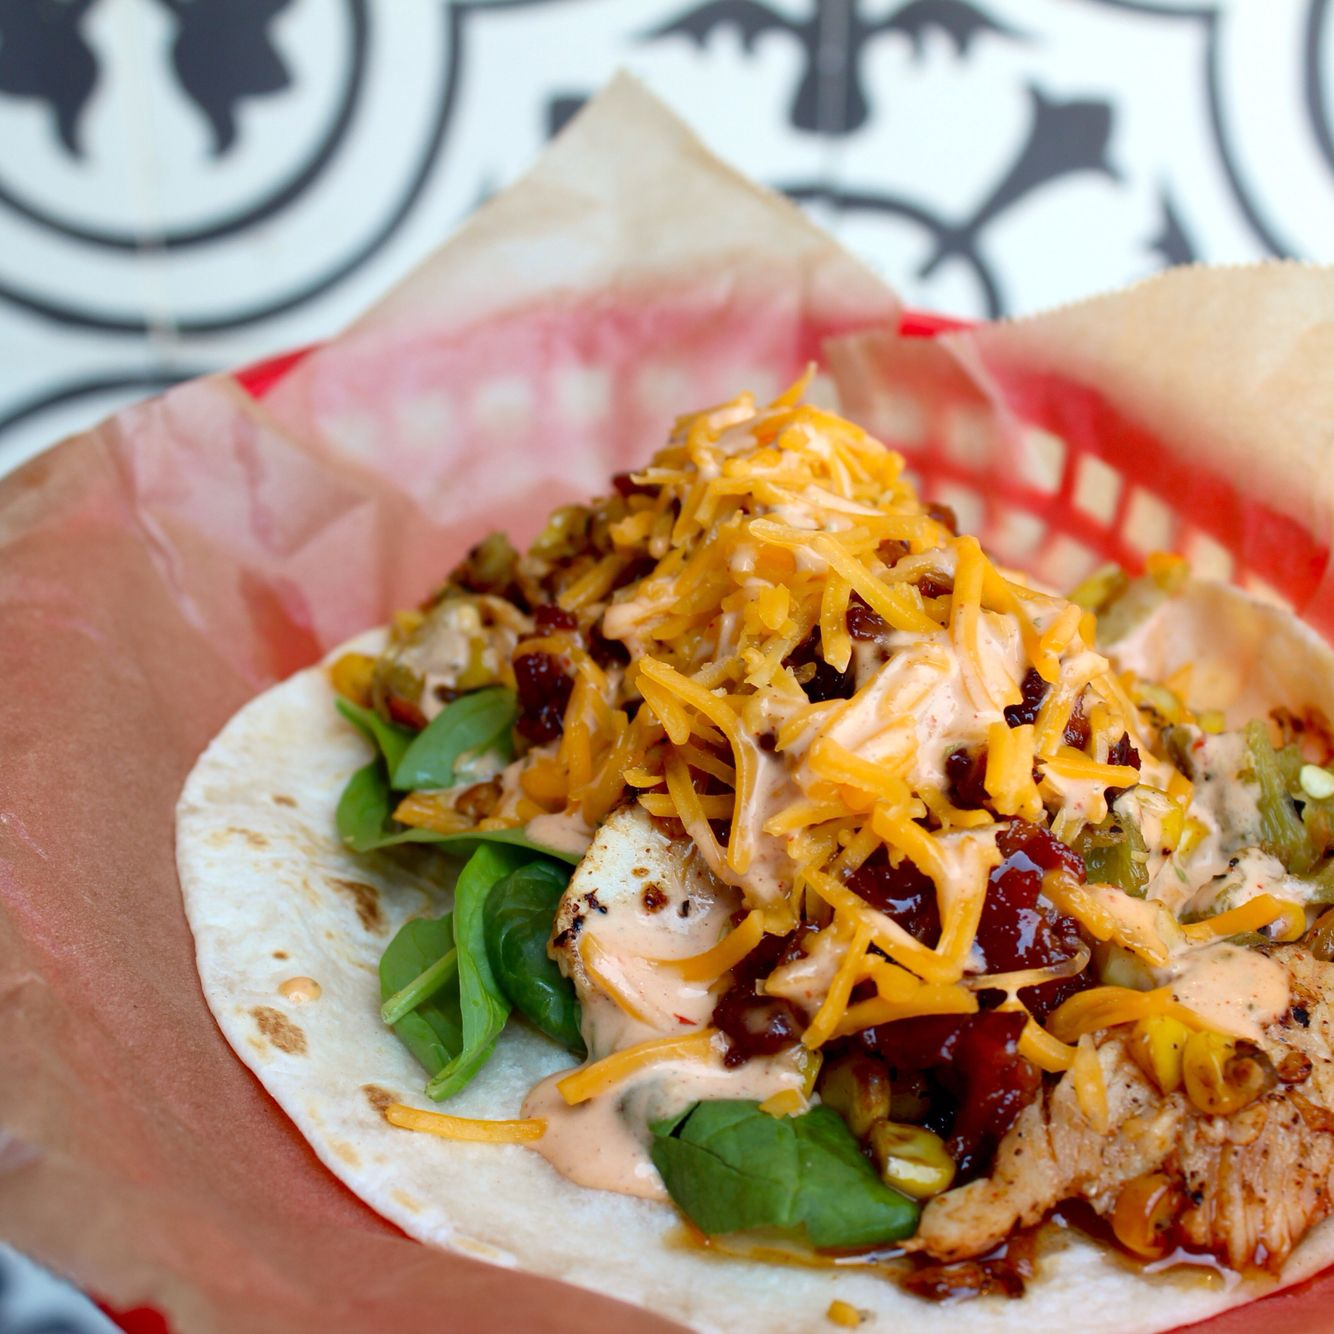 Torchy's Tipsy Chick - Hungry Doug